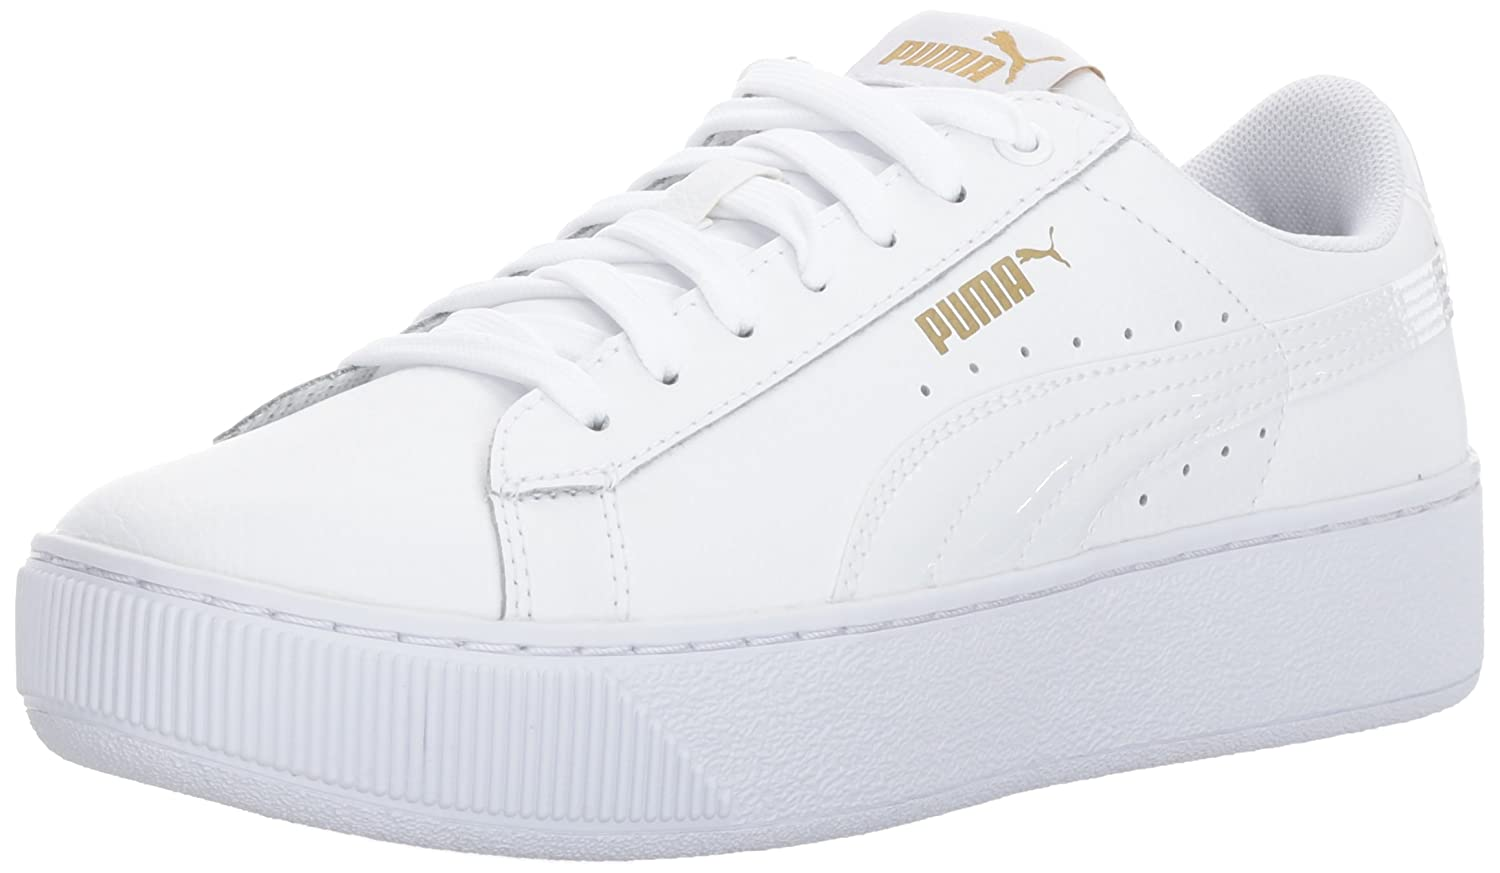 Sneakers for Women On Sale, White, Leather, 2017, 4.5 2Star